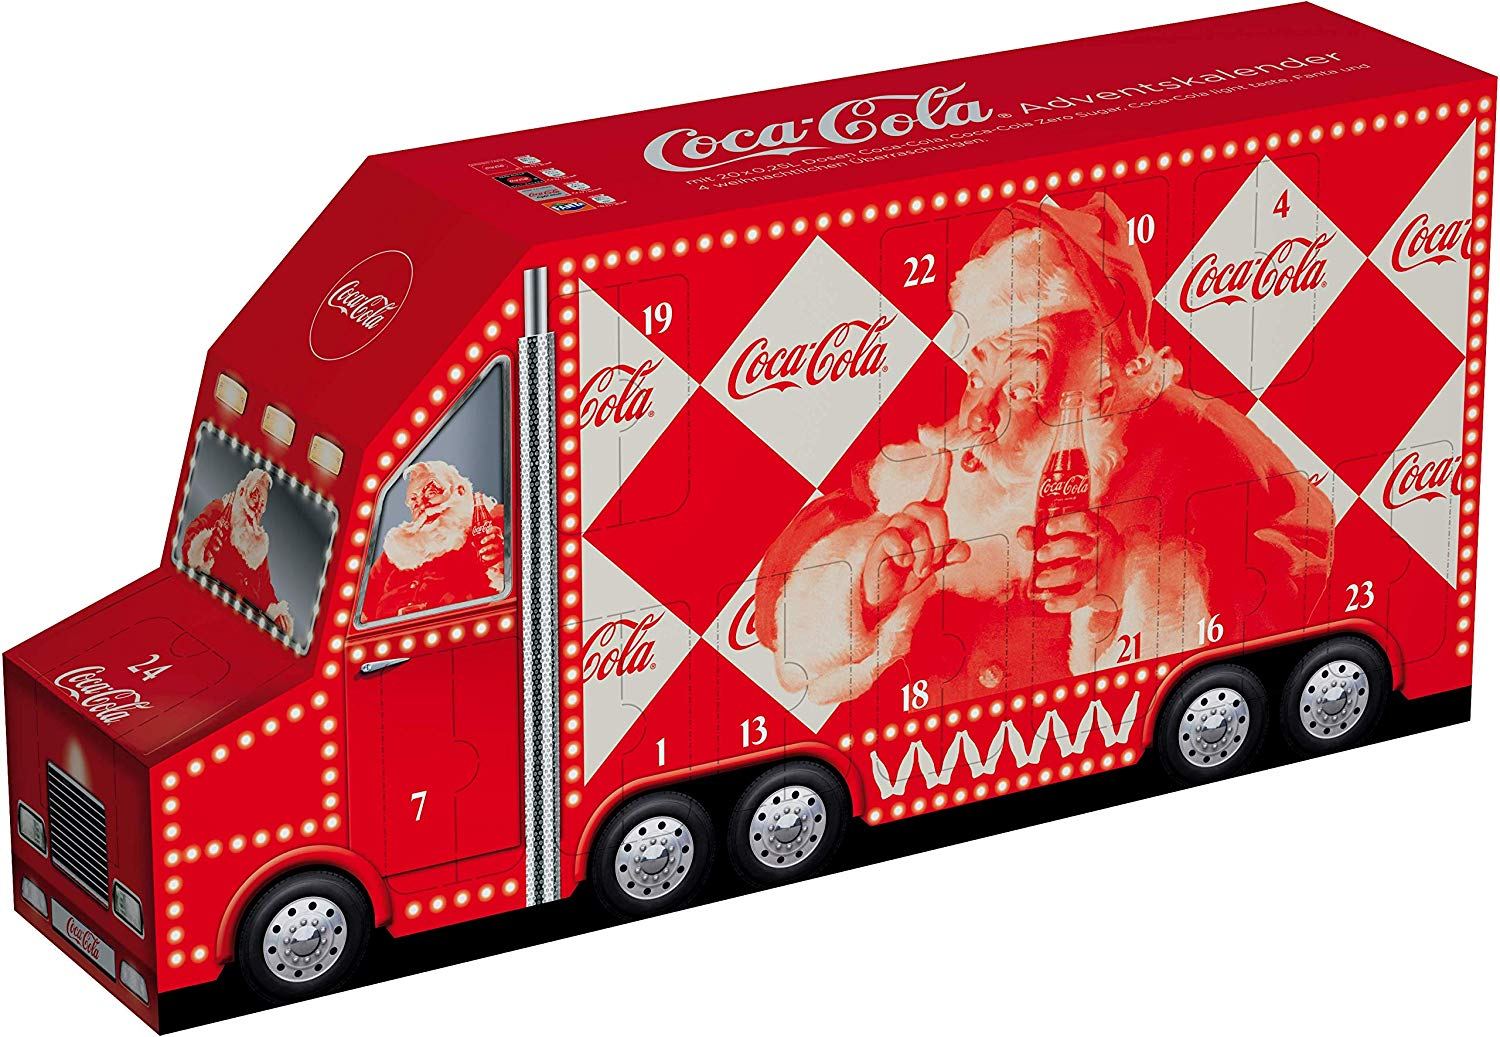 Coca cola Adventskalender für Teenager